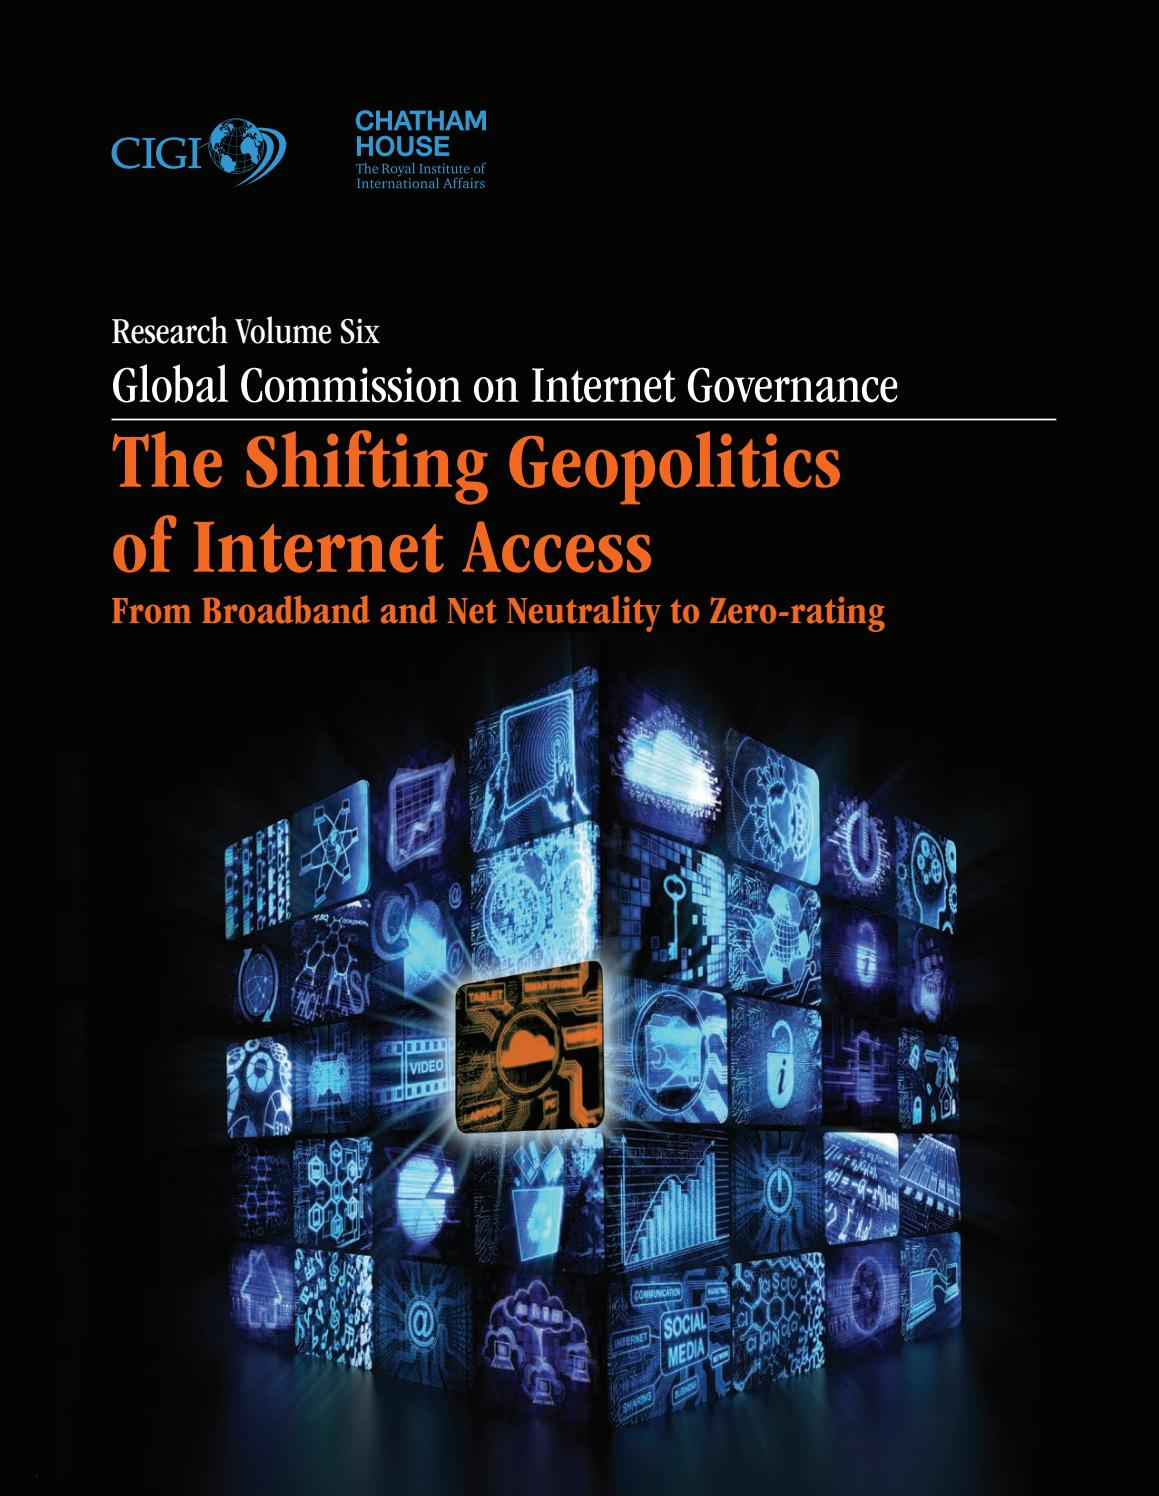 The Shifting Geopolitics of Internet Access: From Broadband ... on house building, house blueprints, house rendering, house elevations, house framing, house layout, house maps, house styles, house exterior, house foundation, house types, house painting, house design, house construction, house drawings, house structure, house plants, house models, house clip art, house roof,